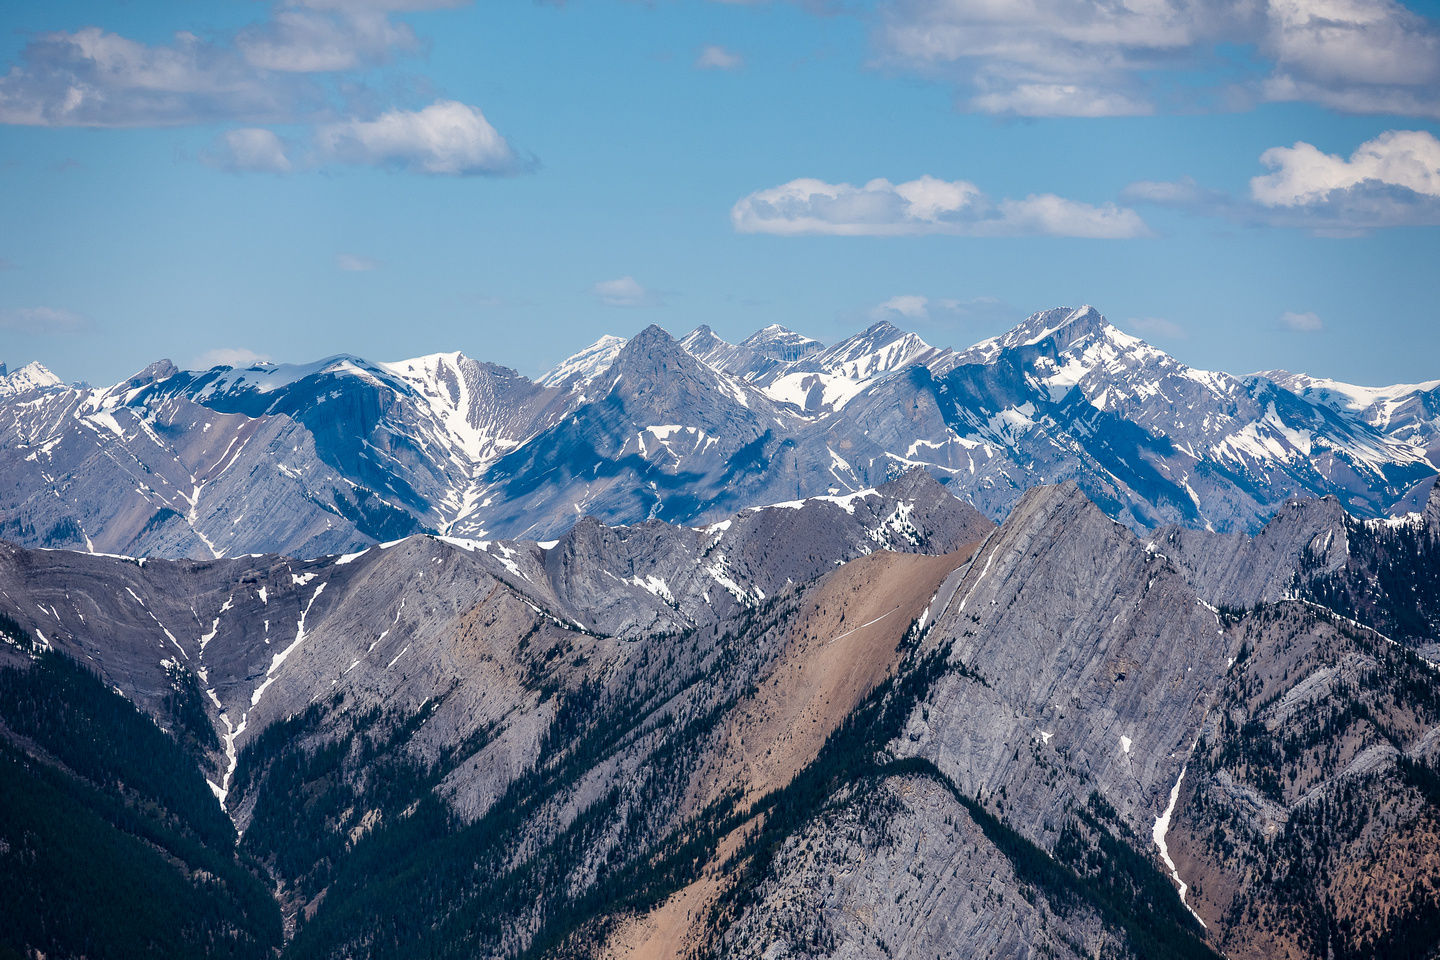 The Fairholme Range includes Fable, Townsend, Stenton and Cougar Peak which I stood on yesterday.